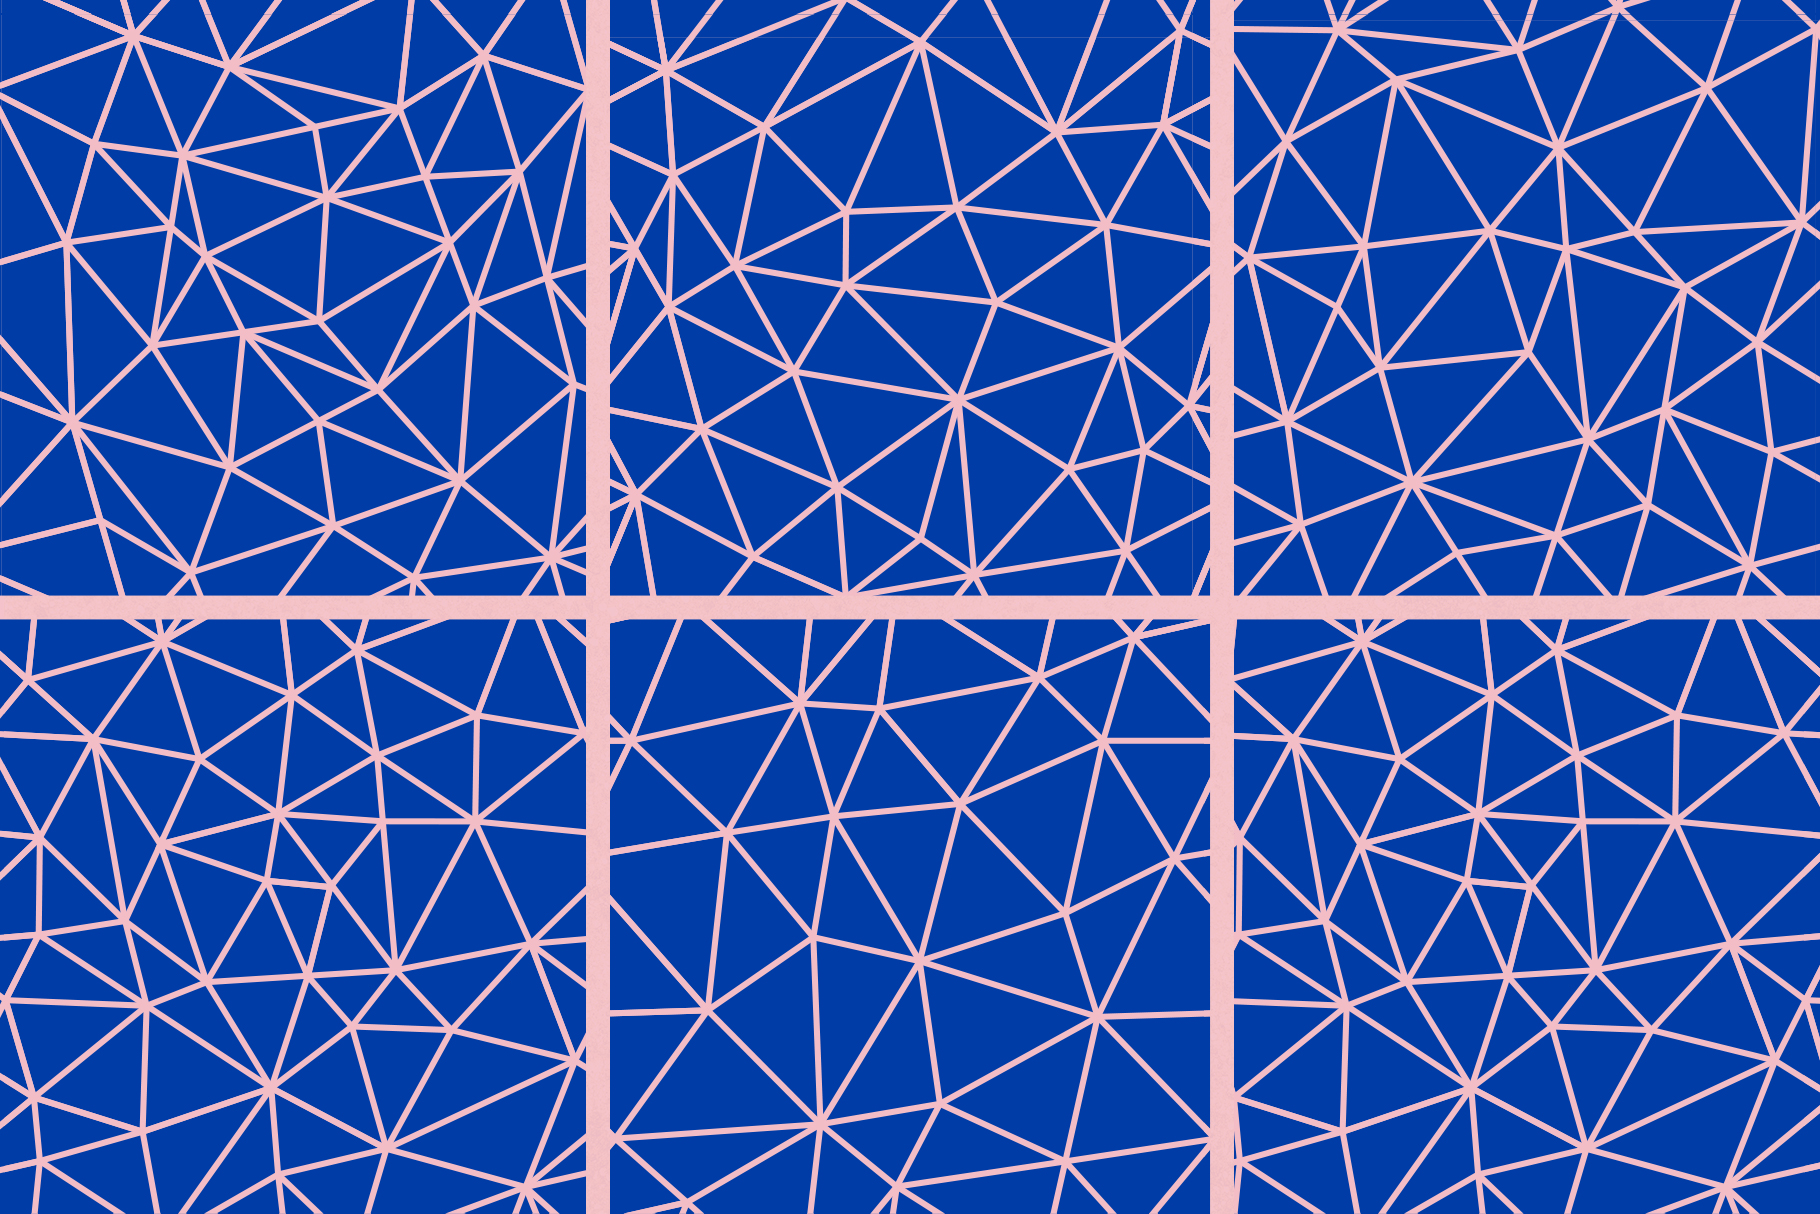 Low Poly Seamless Patterns example image 6